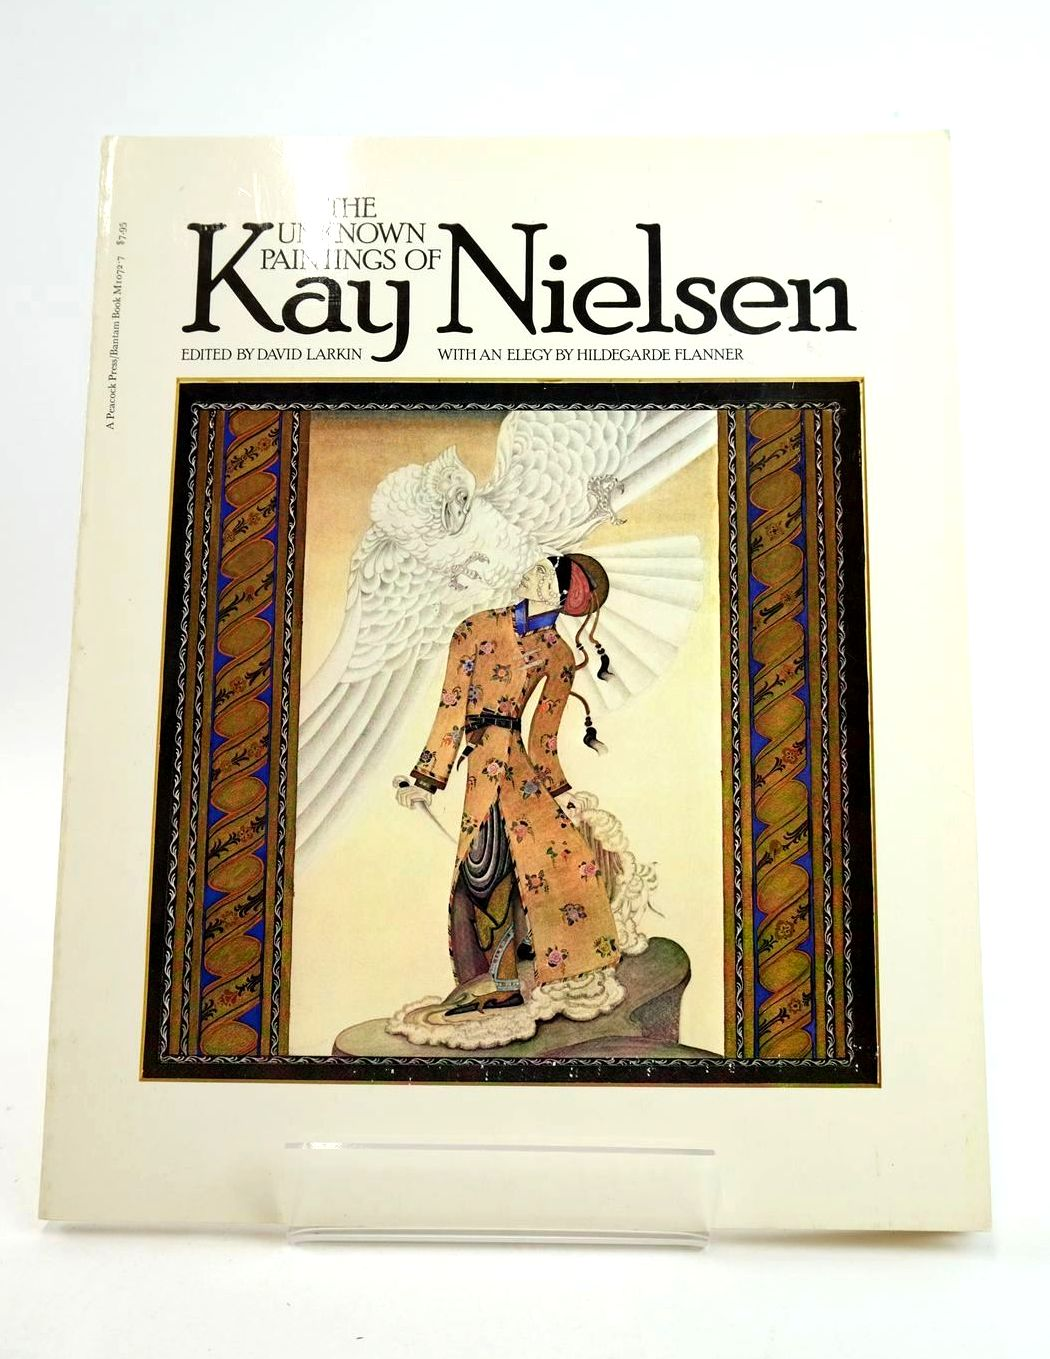 Photo of THE UNKNOWN PAINTINGS OF KAY NIELSEN written by Larkin, David Flanner, Hildegarde illustrated by Nielsen, Kay published by Peacock Press (STOCK CODE: 1318760)  for sale by Stella & Rose's Books